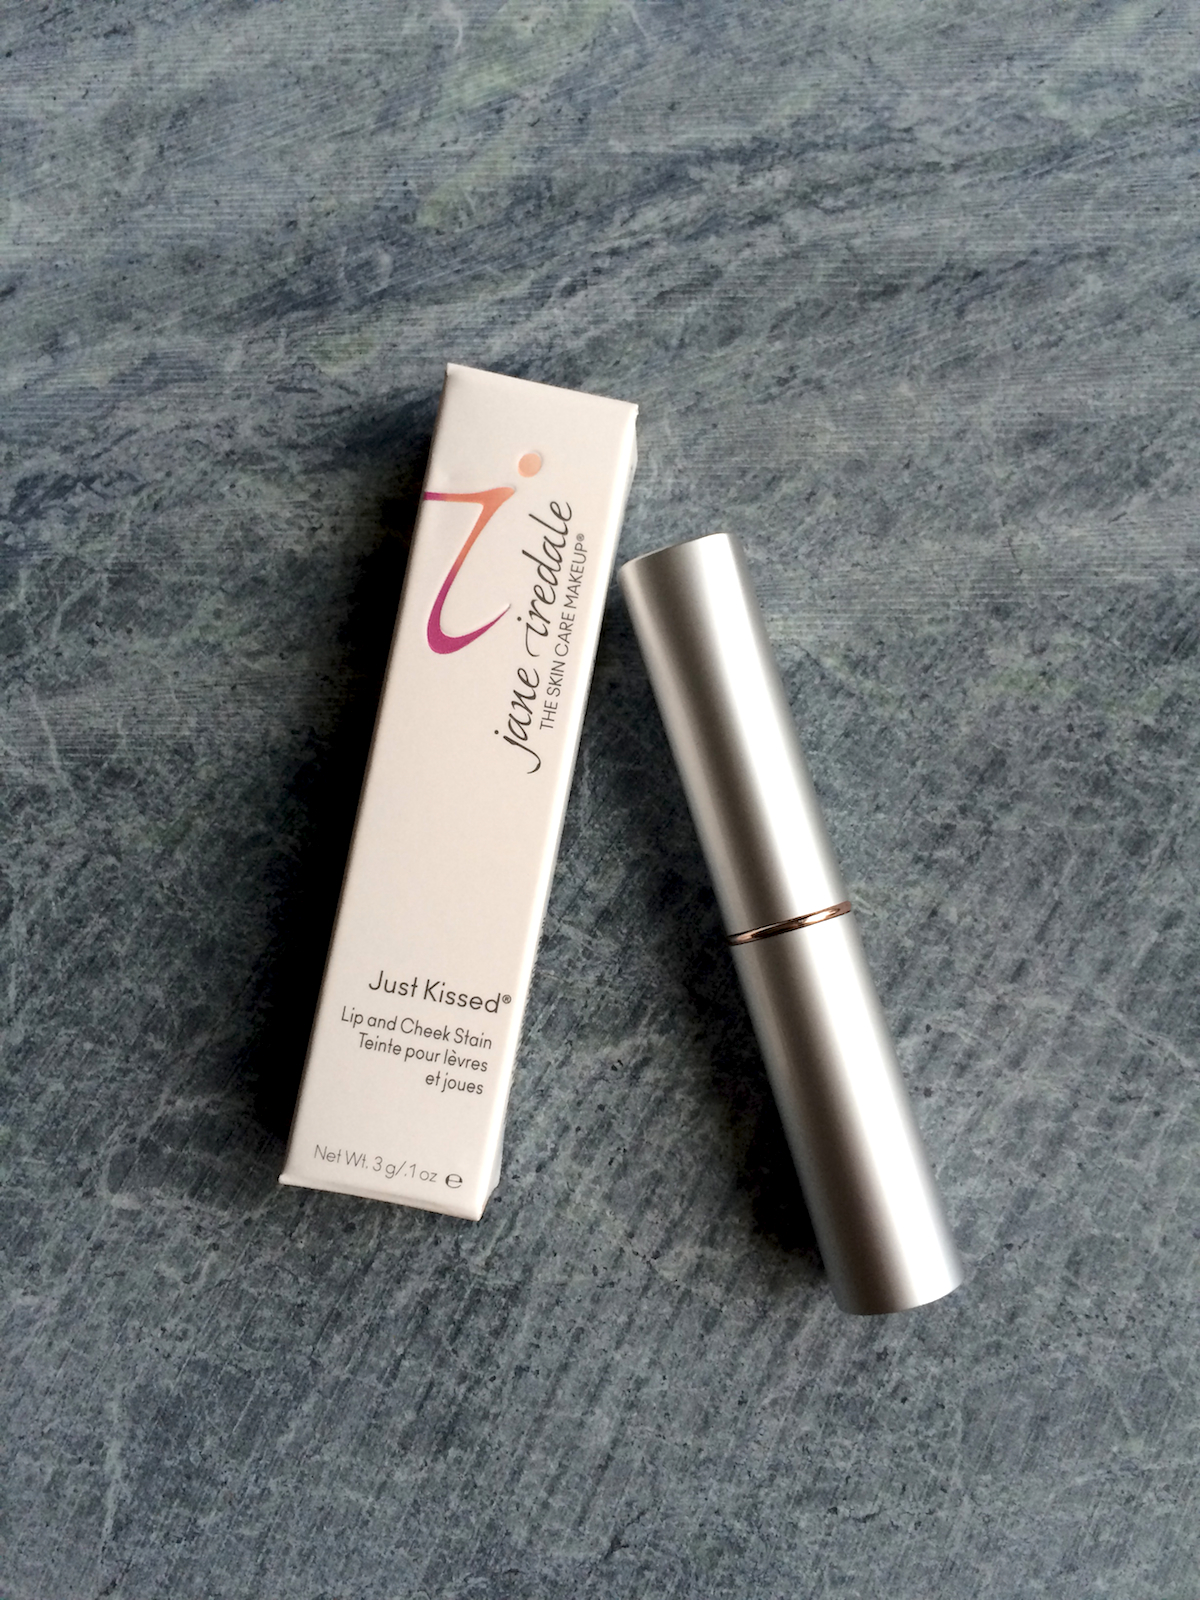 Jane Iredale Forever Red with box|skonhetssnack.se